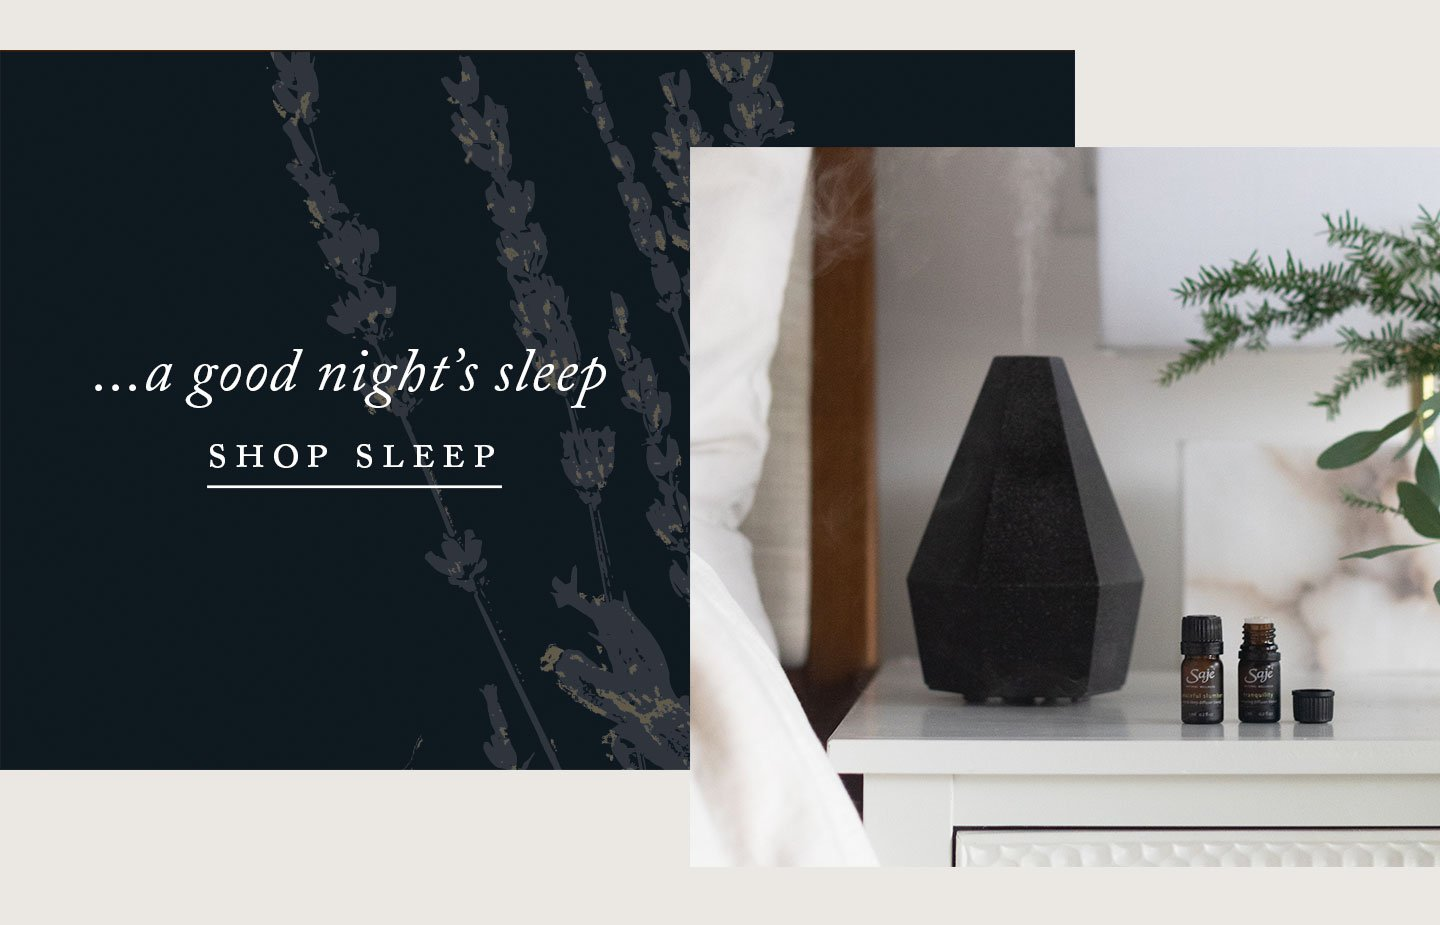 Shop sleep